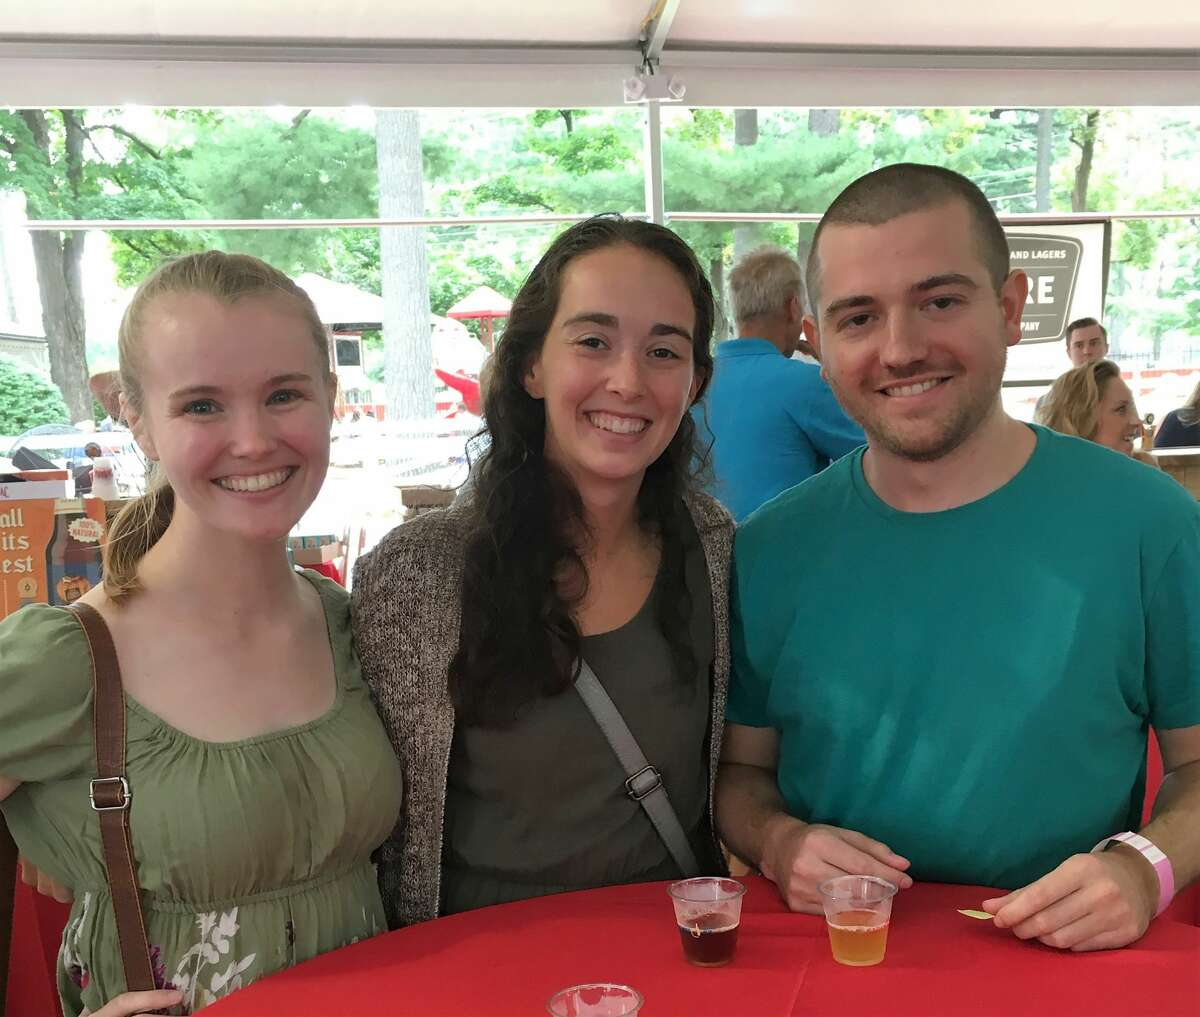 Were you Seen at Brew Central NY Day at the Saratoga Race Course in Saratoga Springs on Wednesday, Aug. 31, 2016?